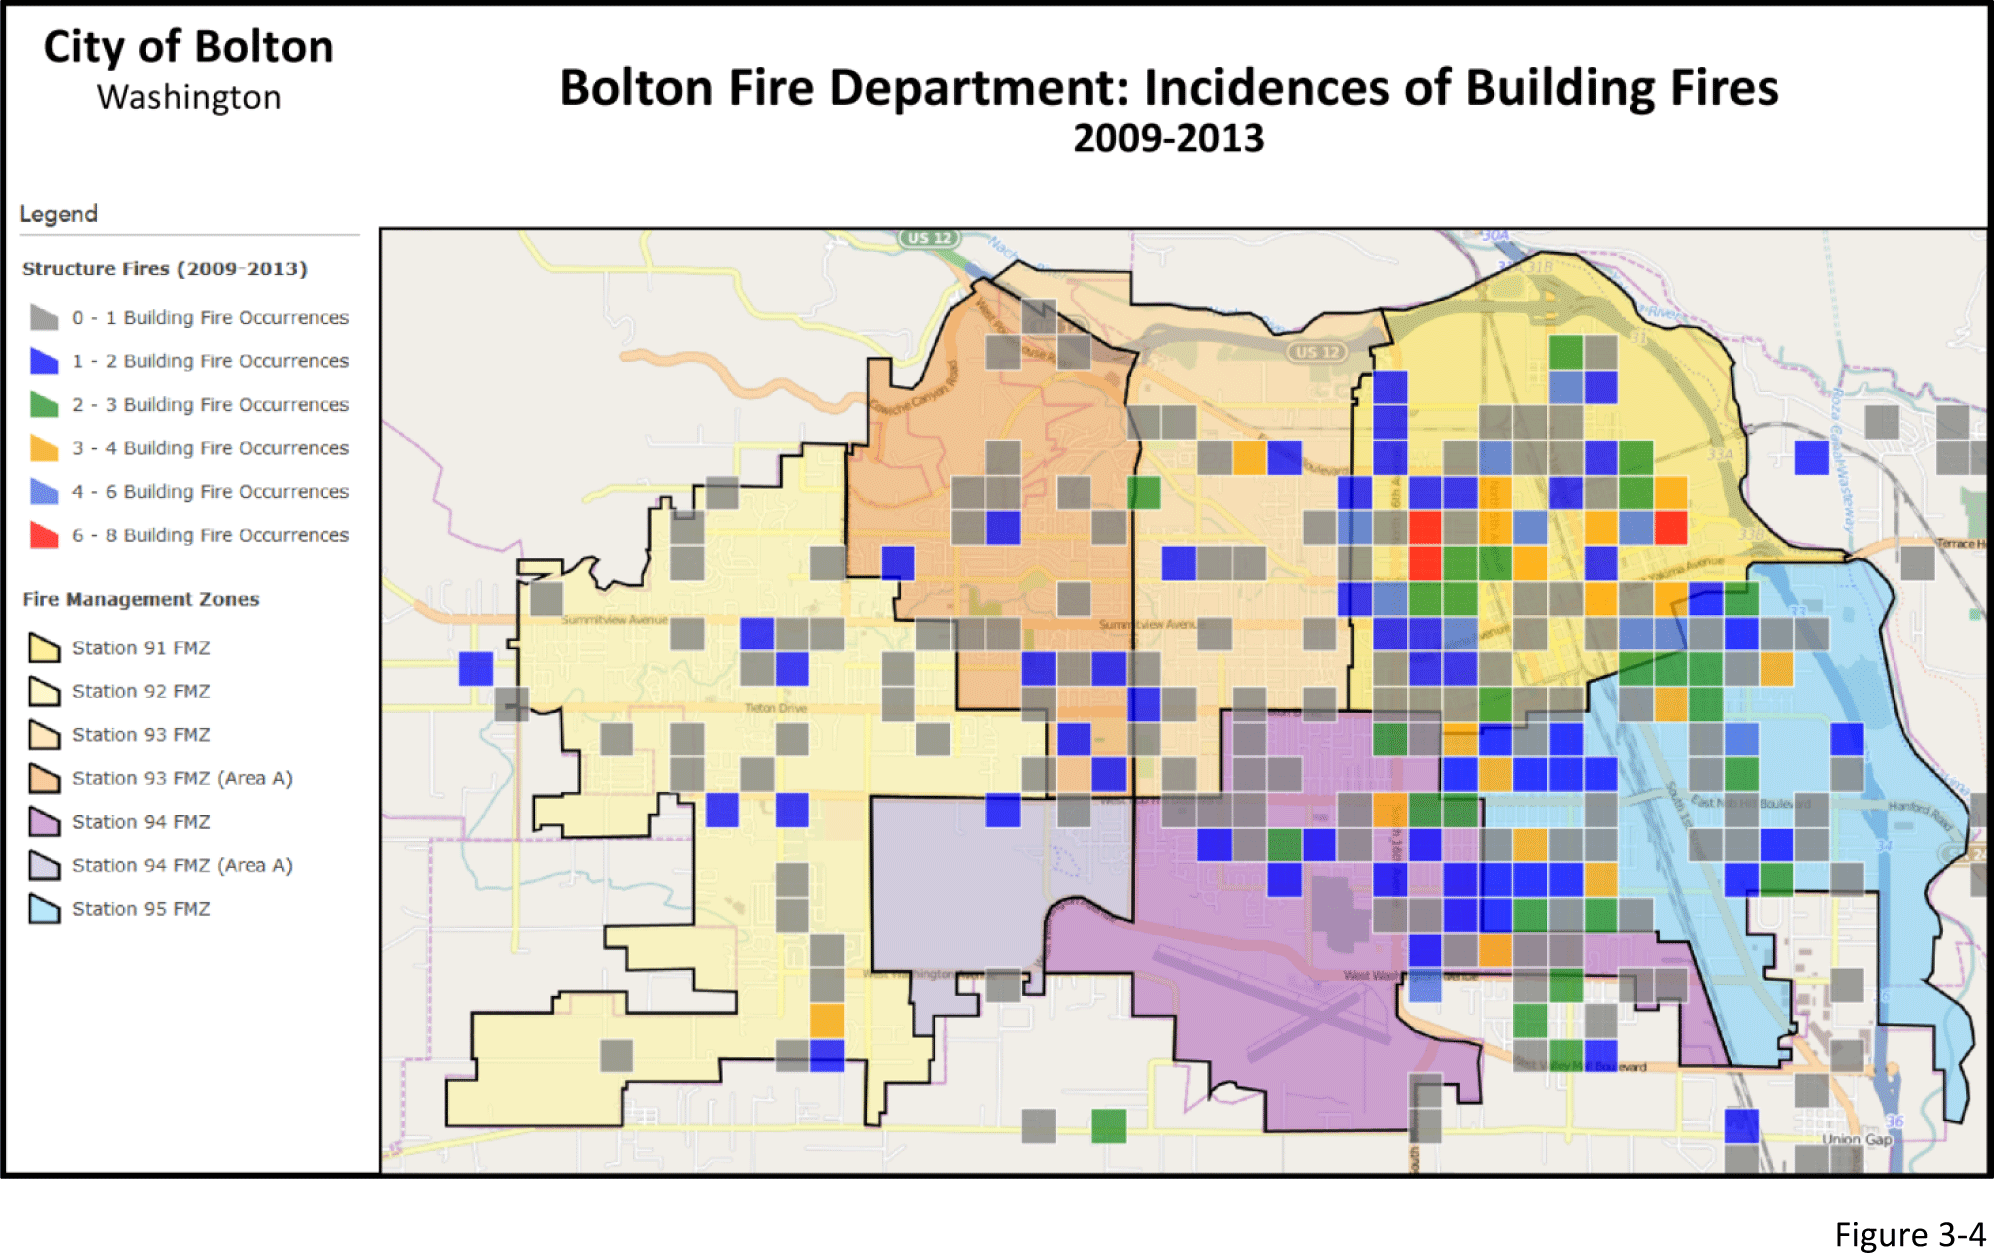 Figure 3-4: Map showing incidences of building fires. Color-coded to indicate volume of fires in region.